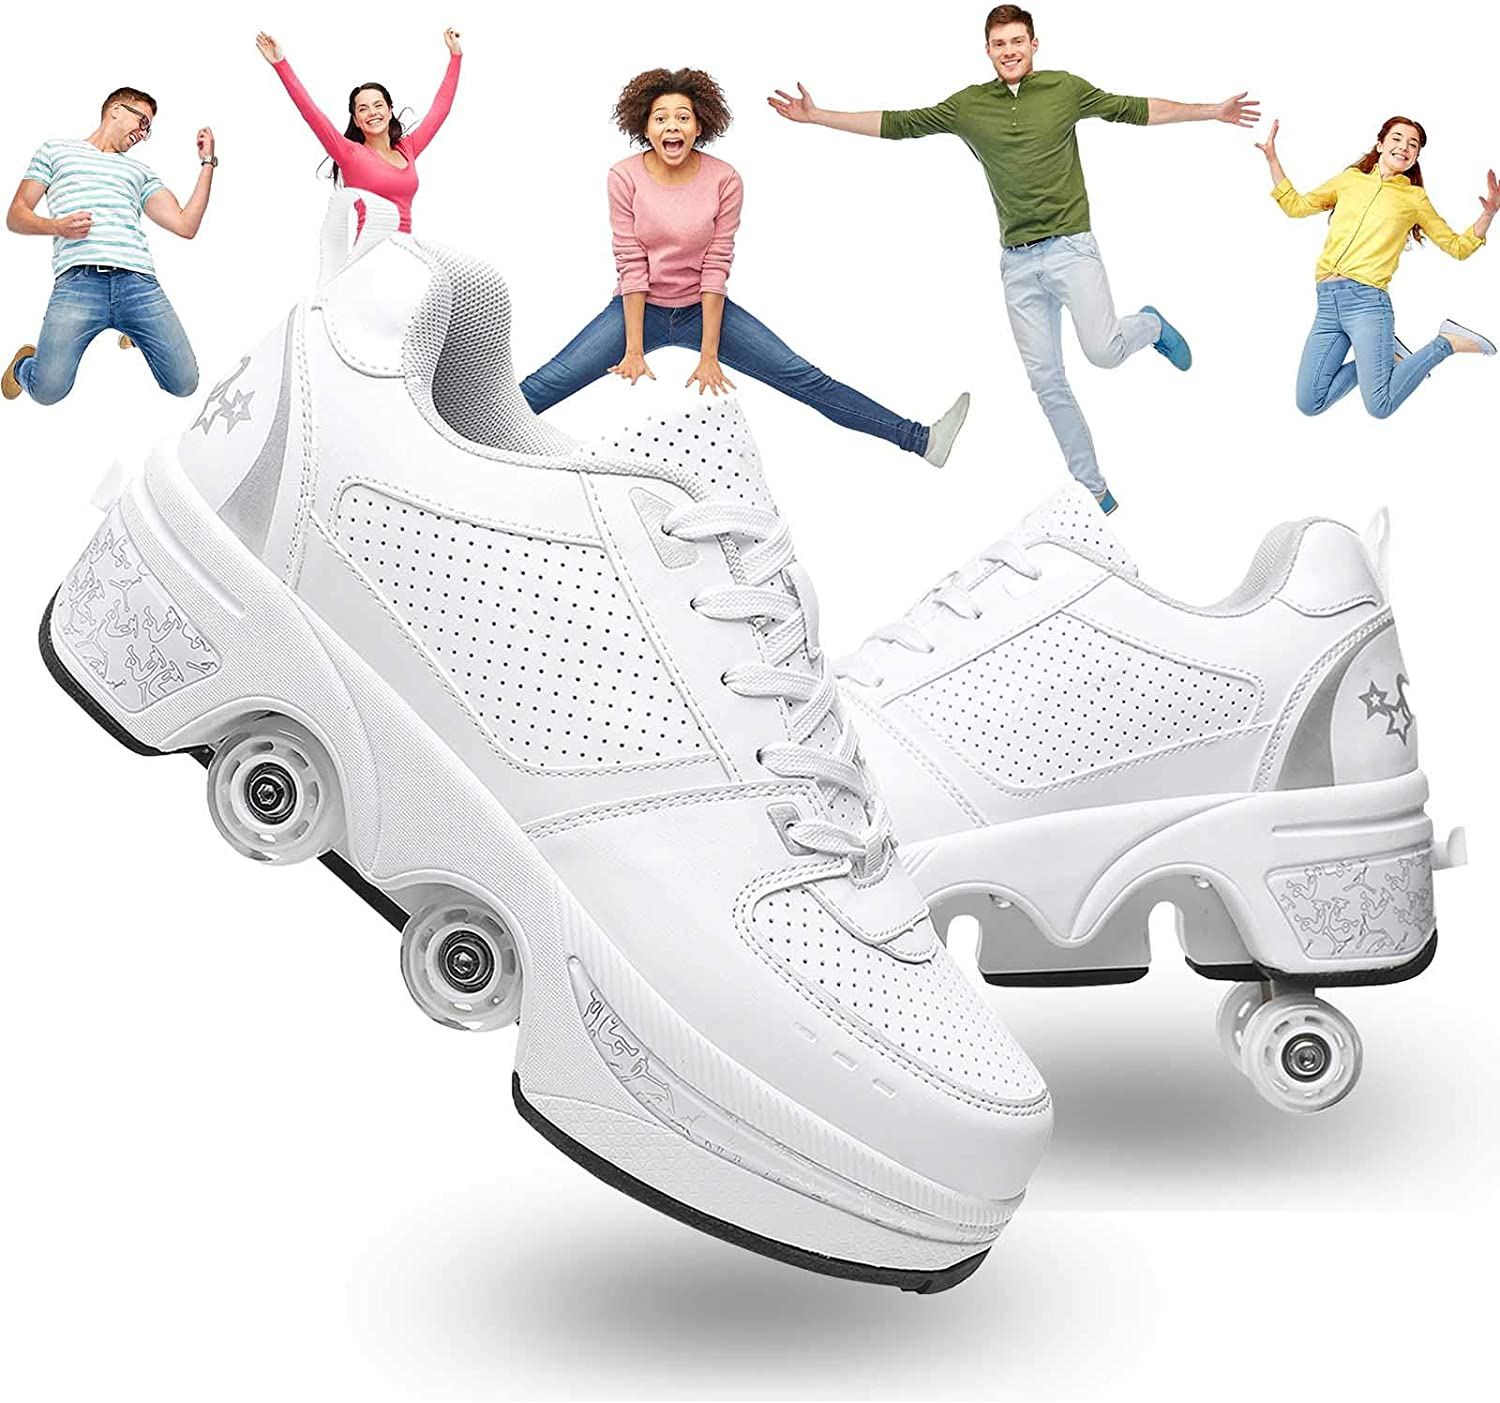 2021 spring and summer Now on sale new Mlyzhe Rollerskate Shoes Parkour Skates Retractable Dual Casual